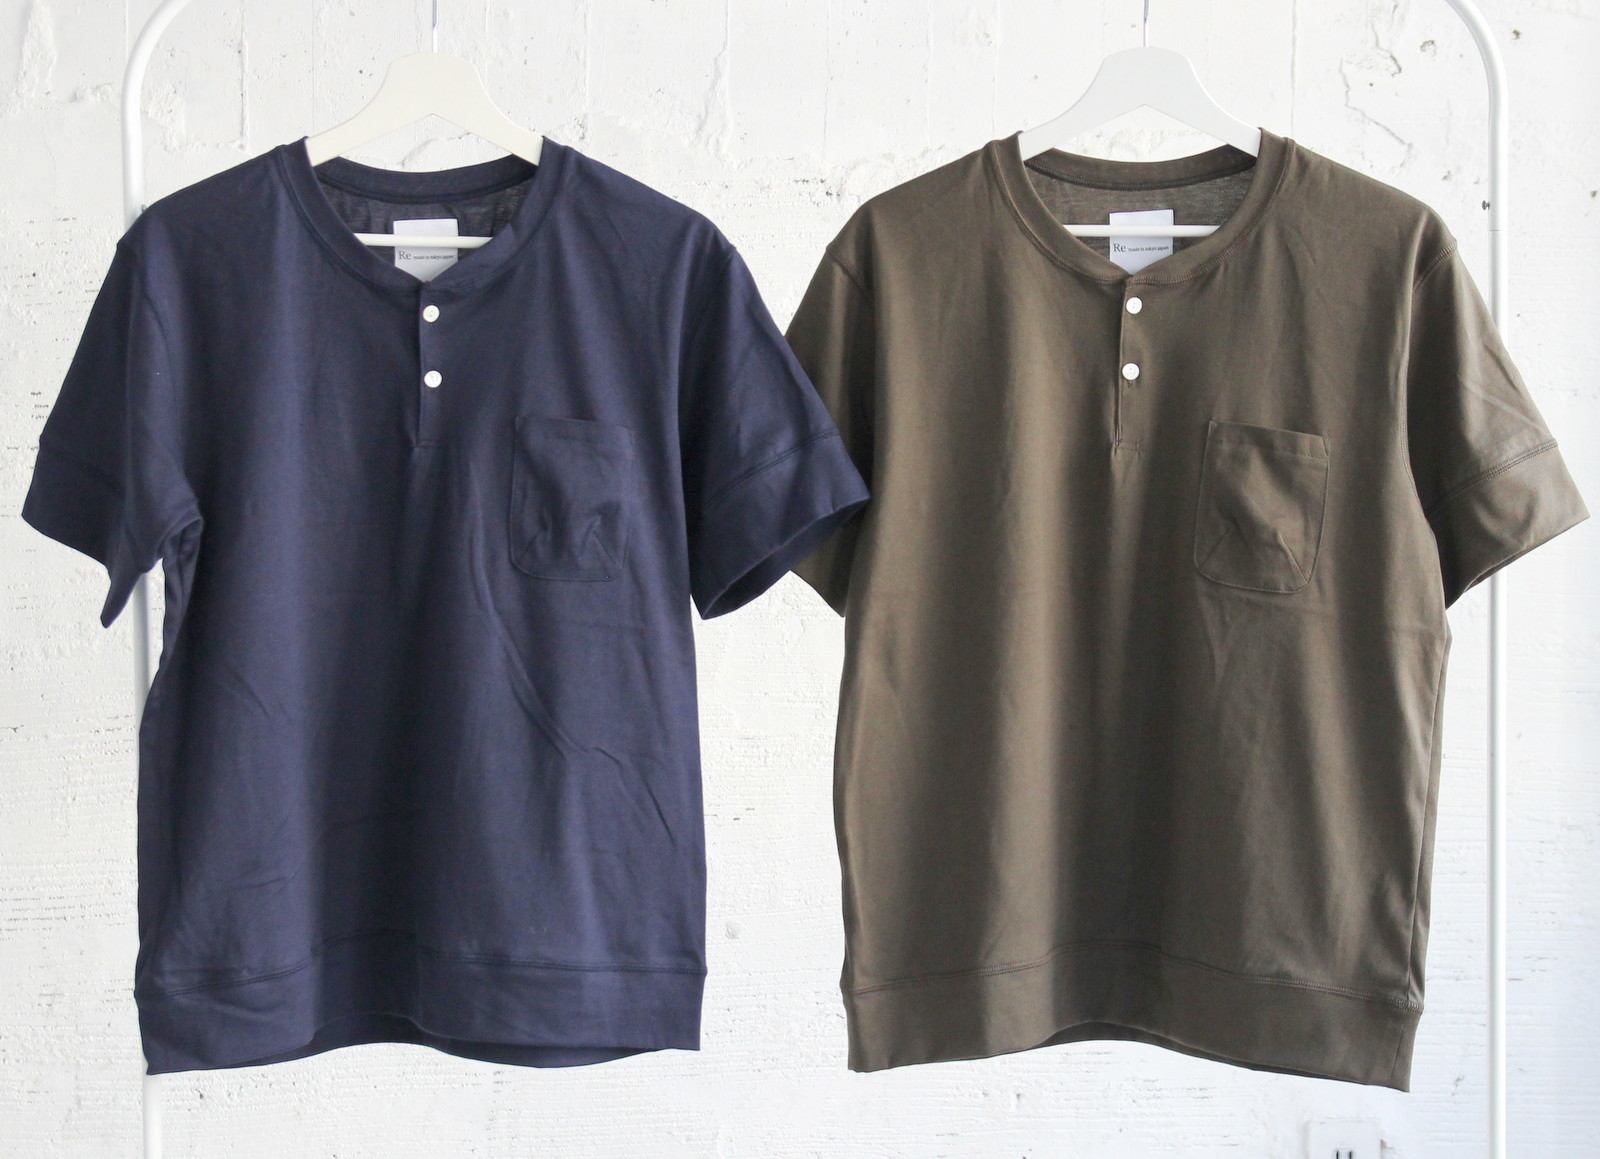 Henley Neck Pocket T-shirt_c0379477_20533207.jpg